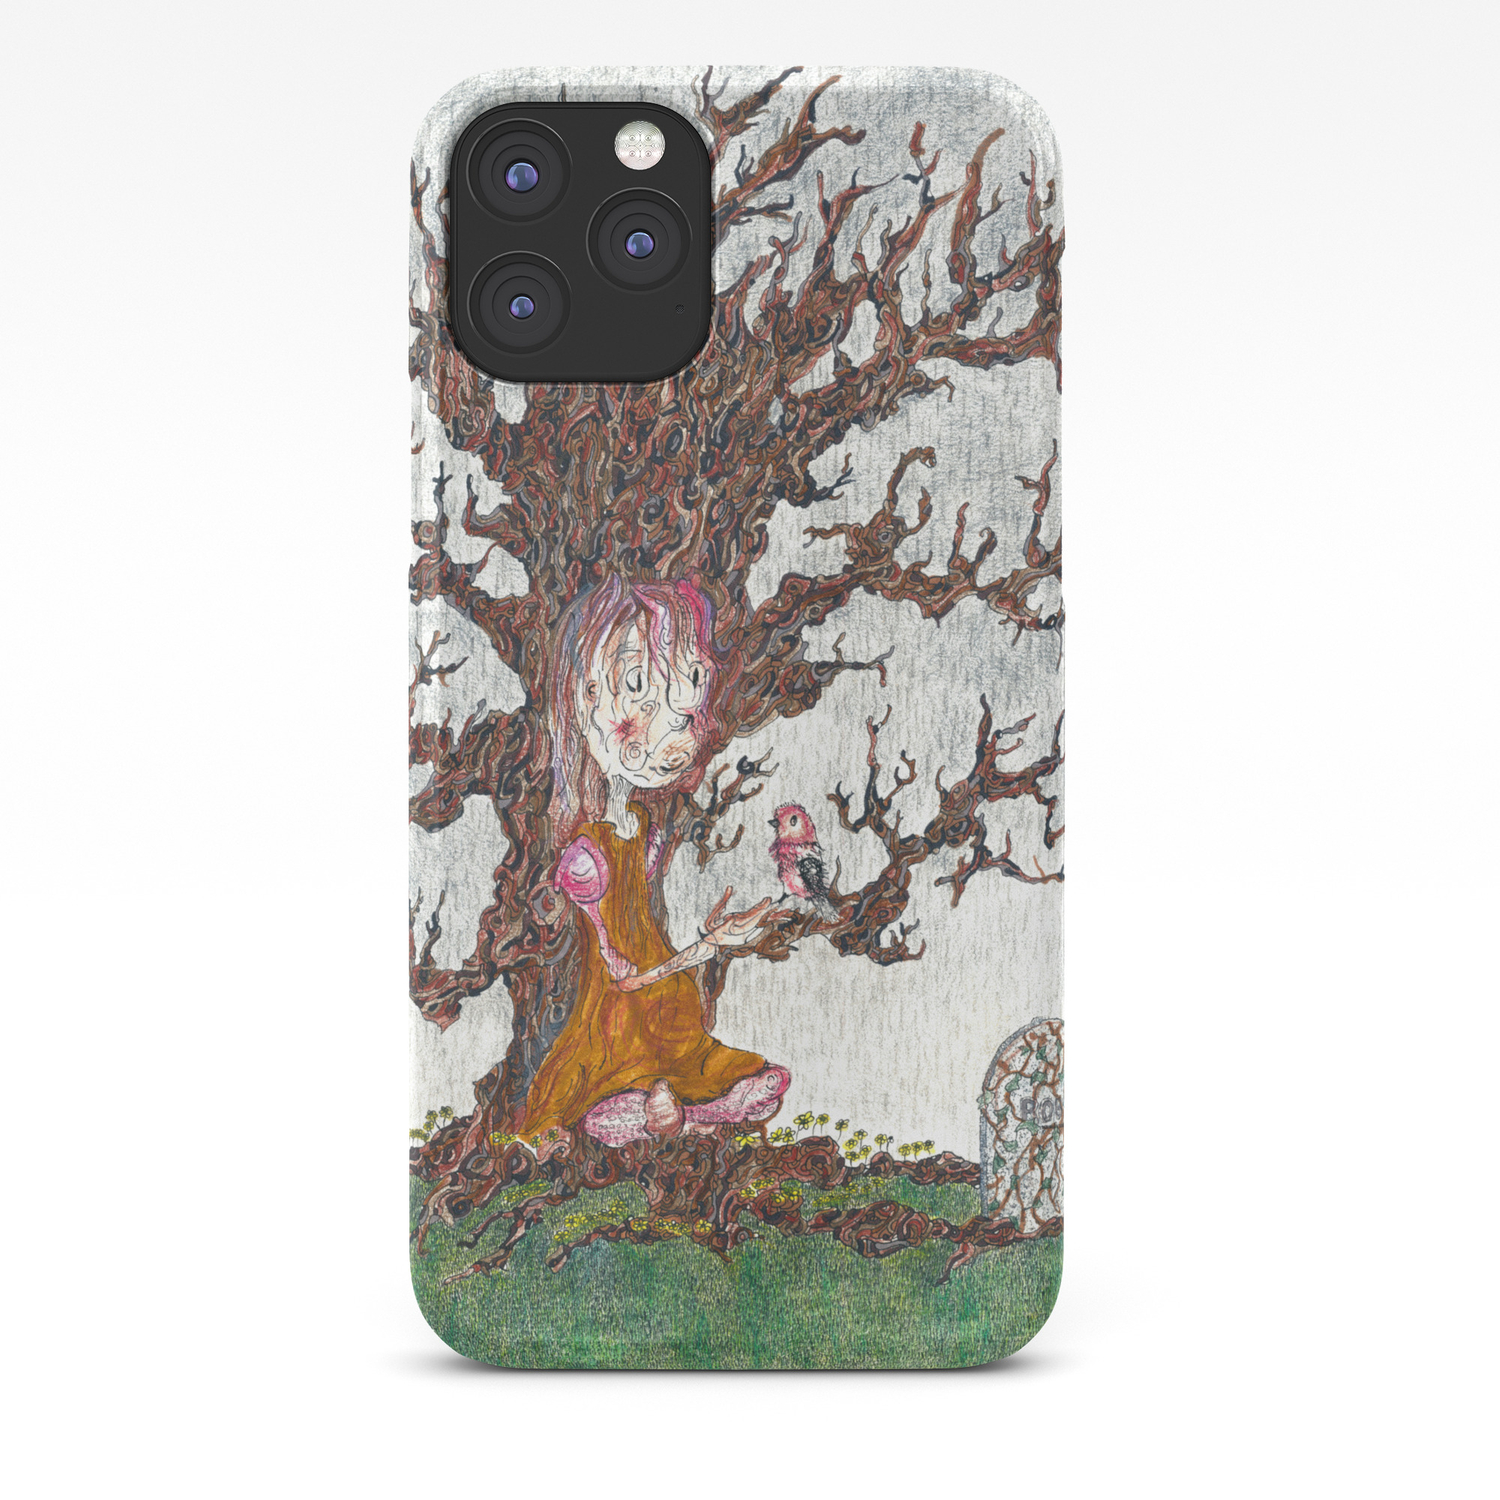 Ivy Robin iphone case